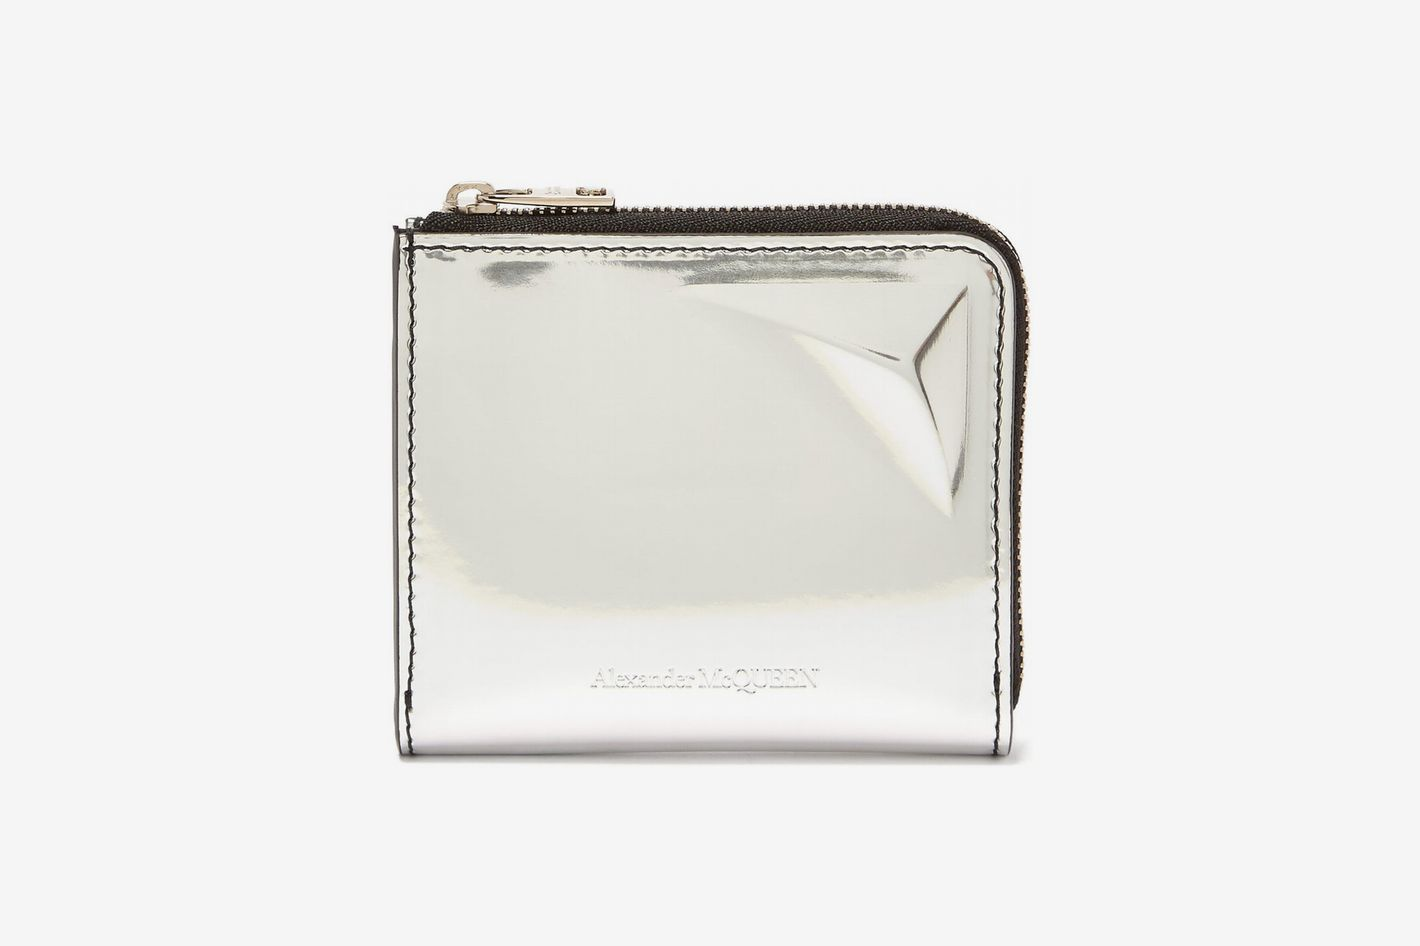 6f23fbd8615e9 Wallets From Balenciaga, Acne, and More on Sale at Matches